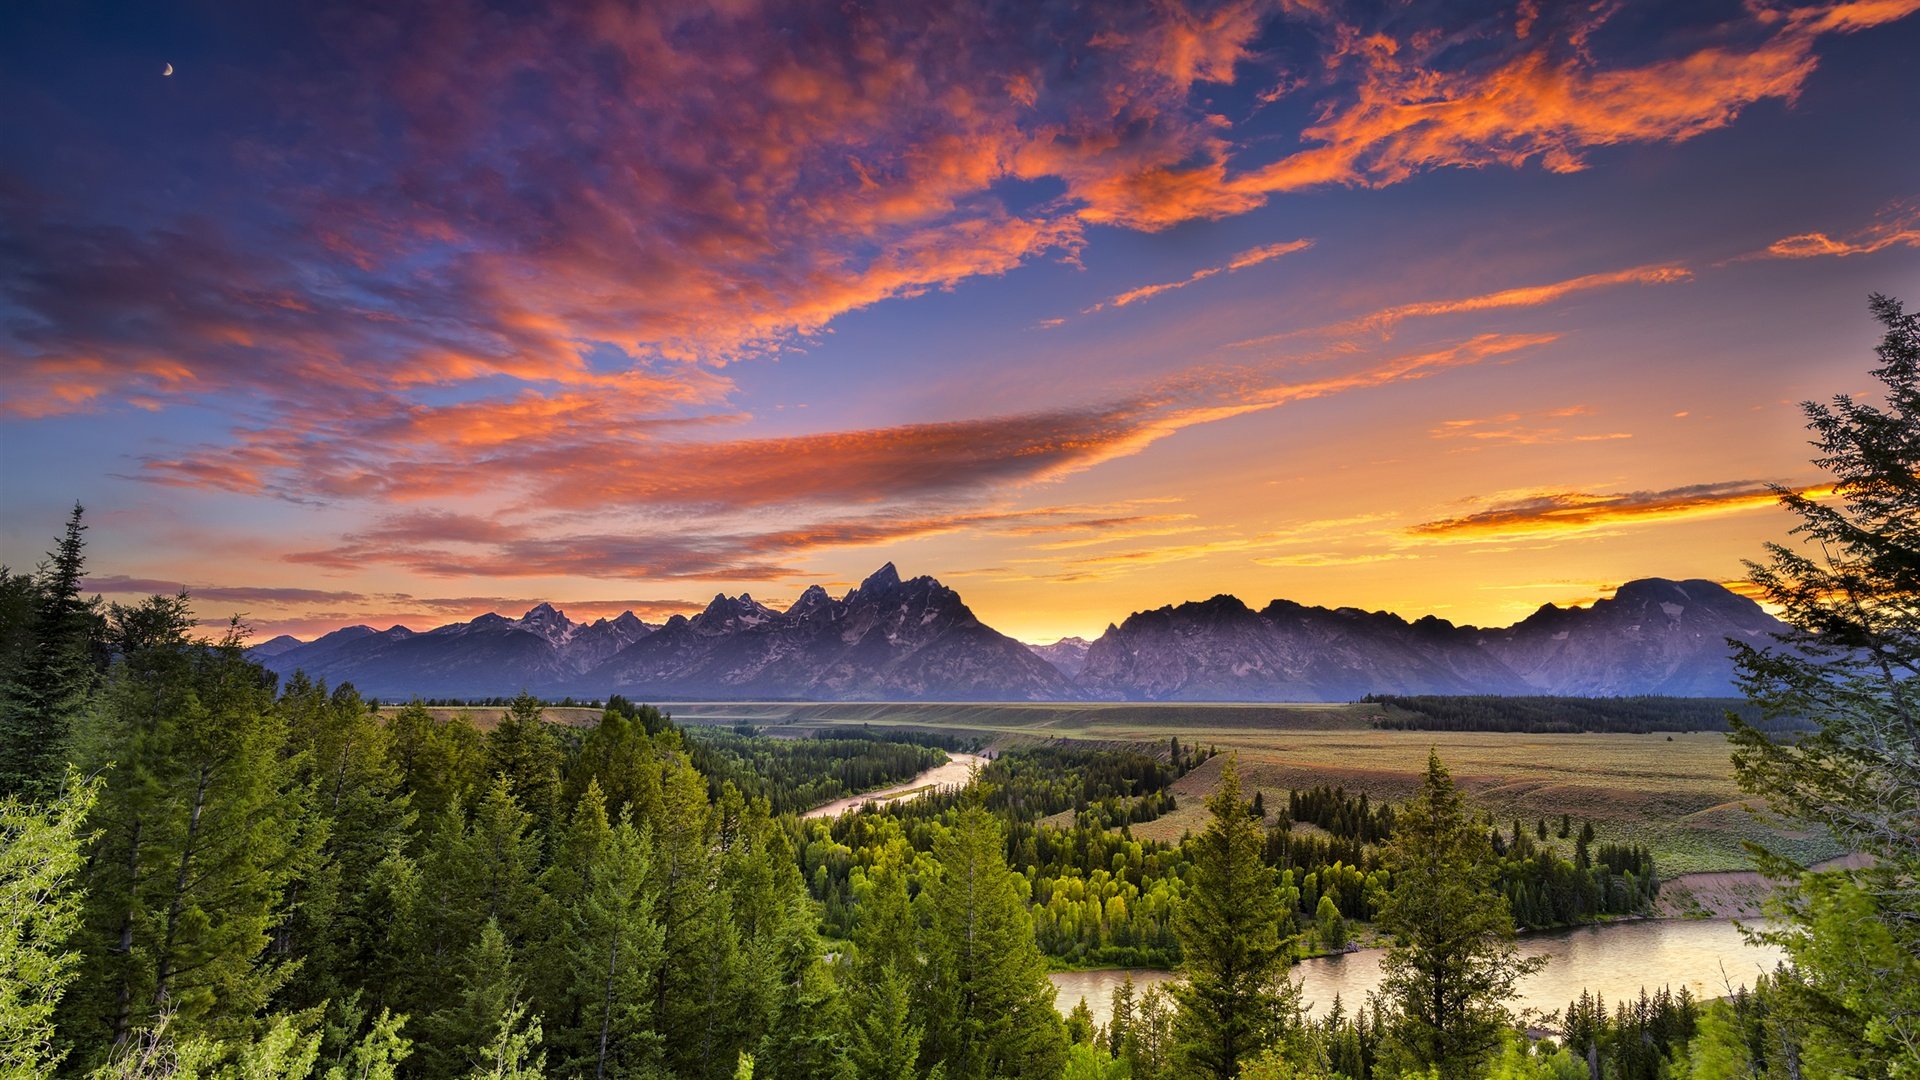 Best Iphone 4s Wallpapers Hd Wallpaper Grand Teton National Park Wyoming River